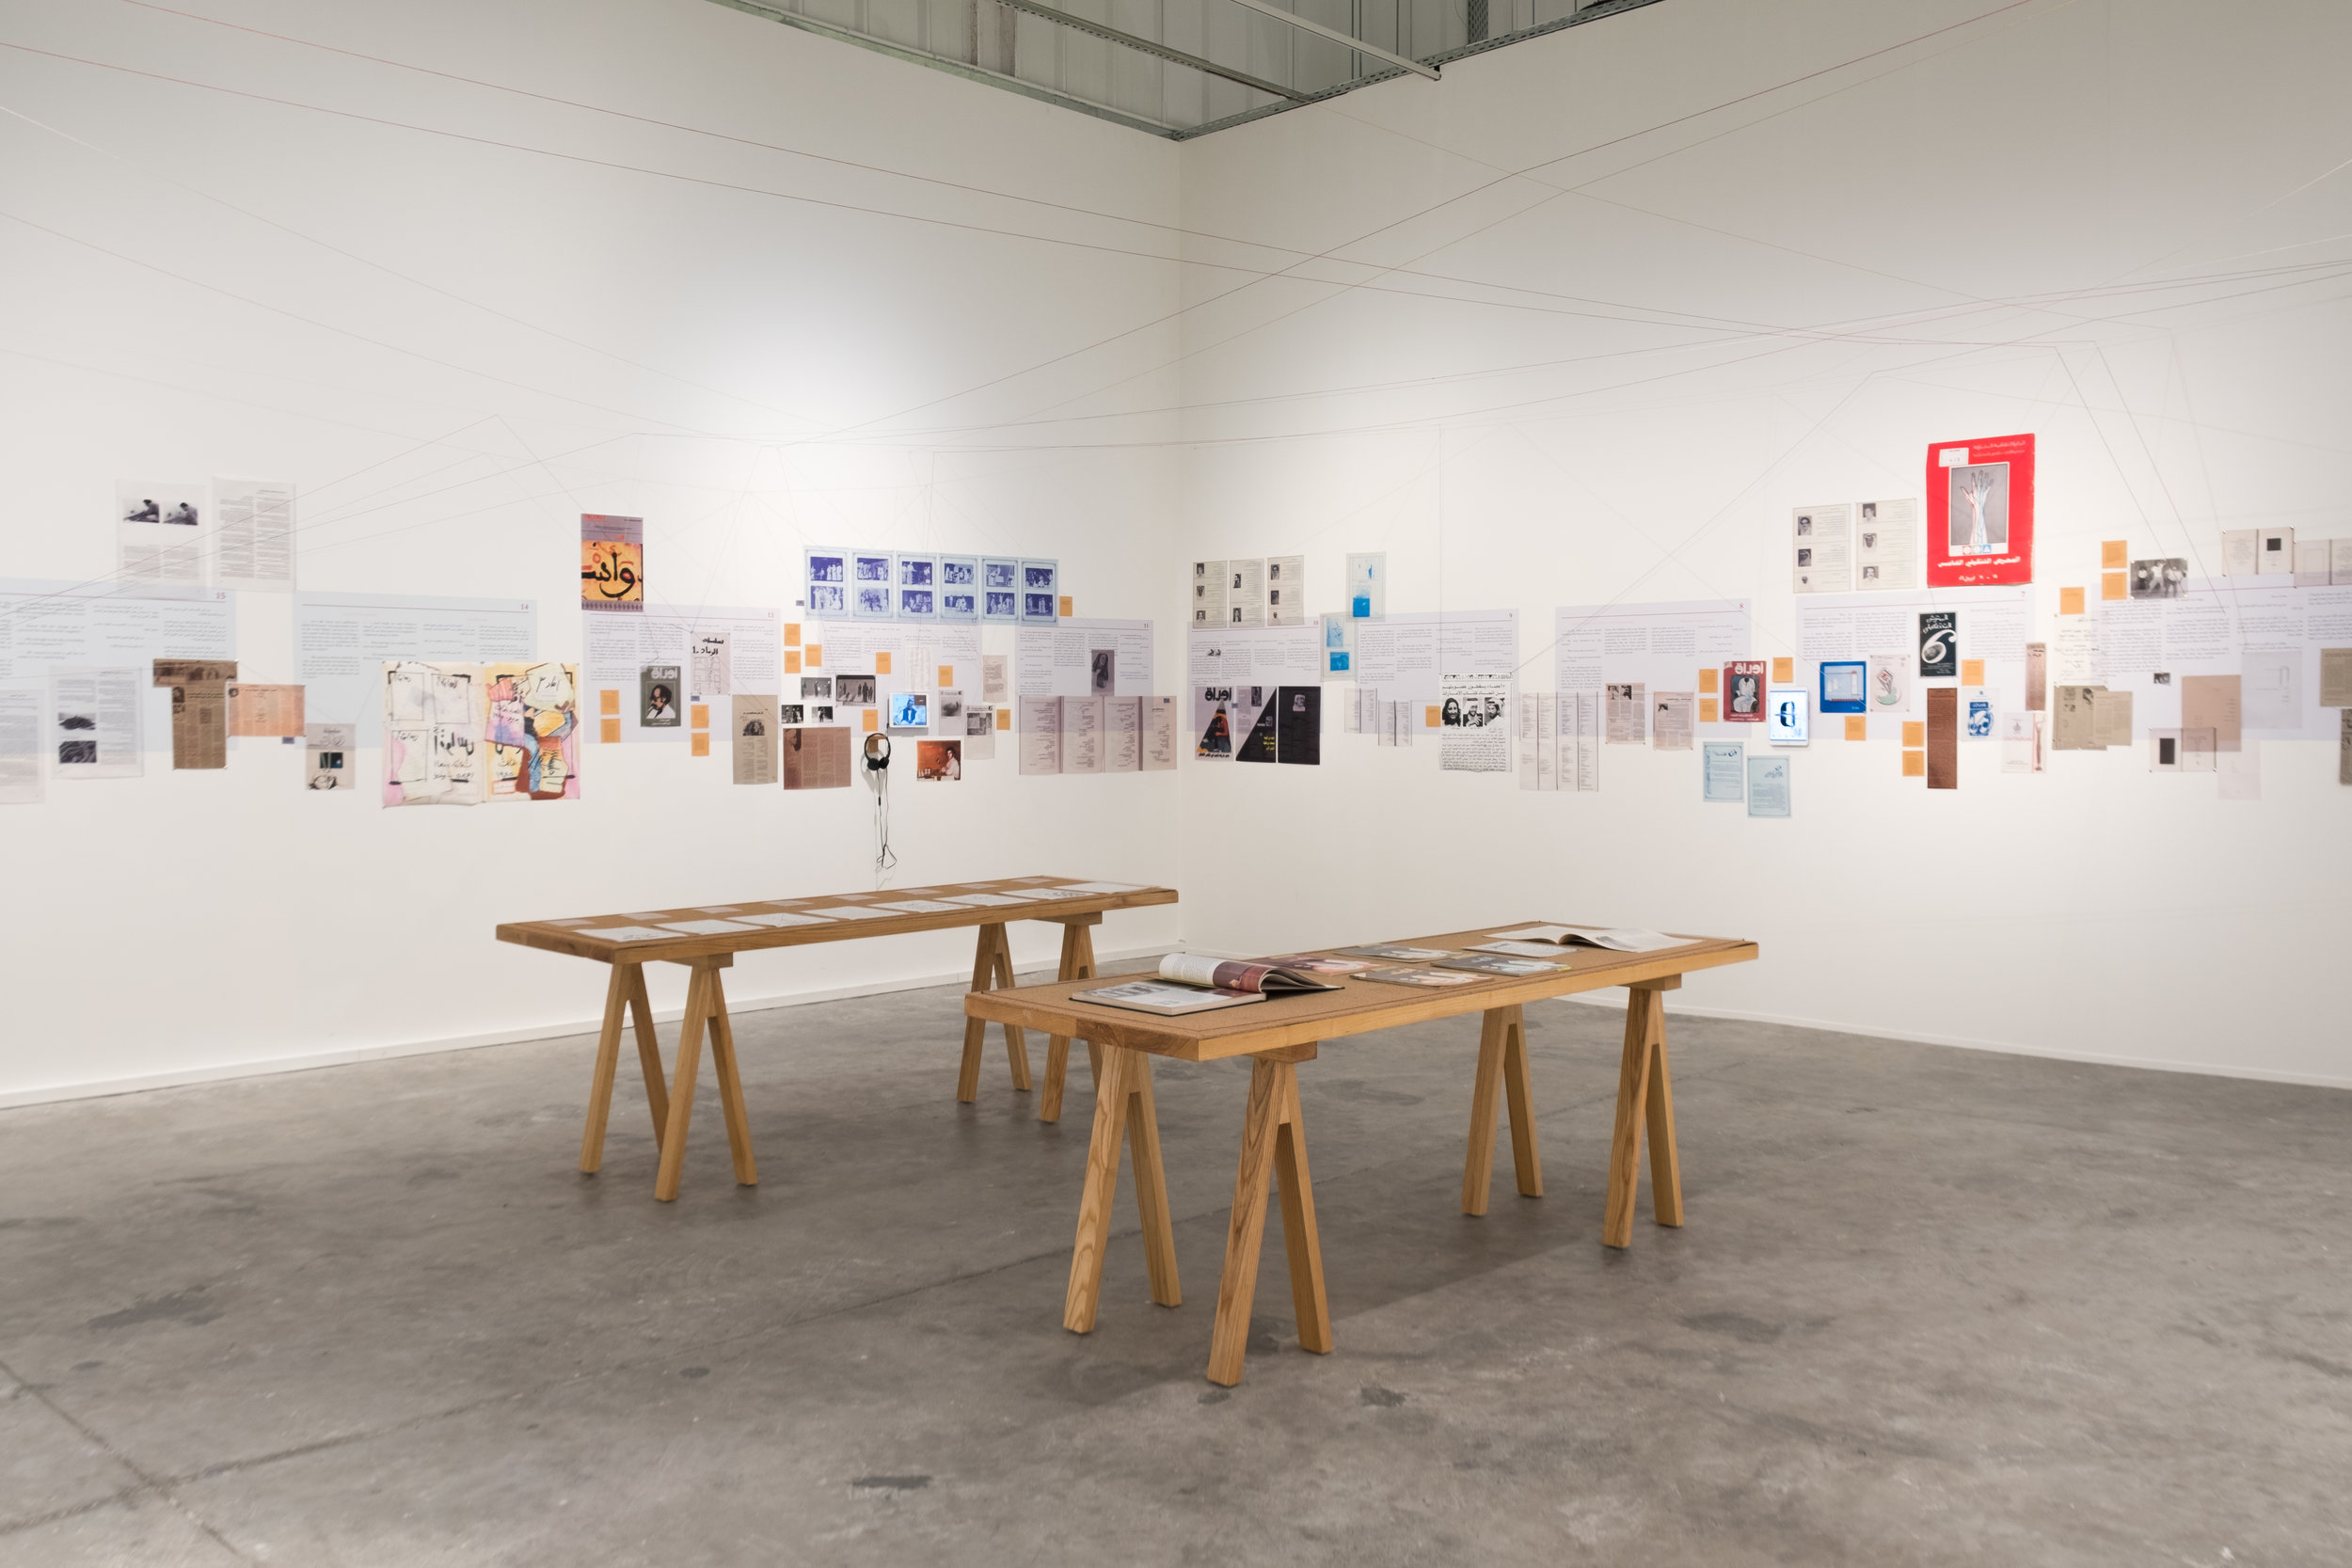 Annotations: Interdisciplinary Practices of the Early 80s in the UAE. Project Space Art Jameel's research studio. Image courtesy of Art Jameel